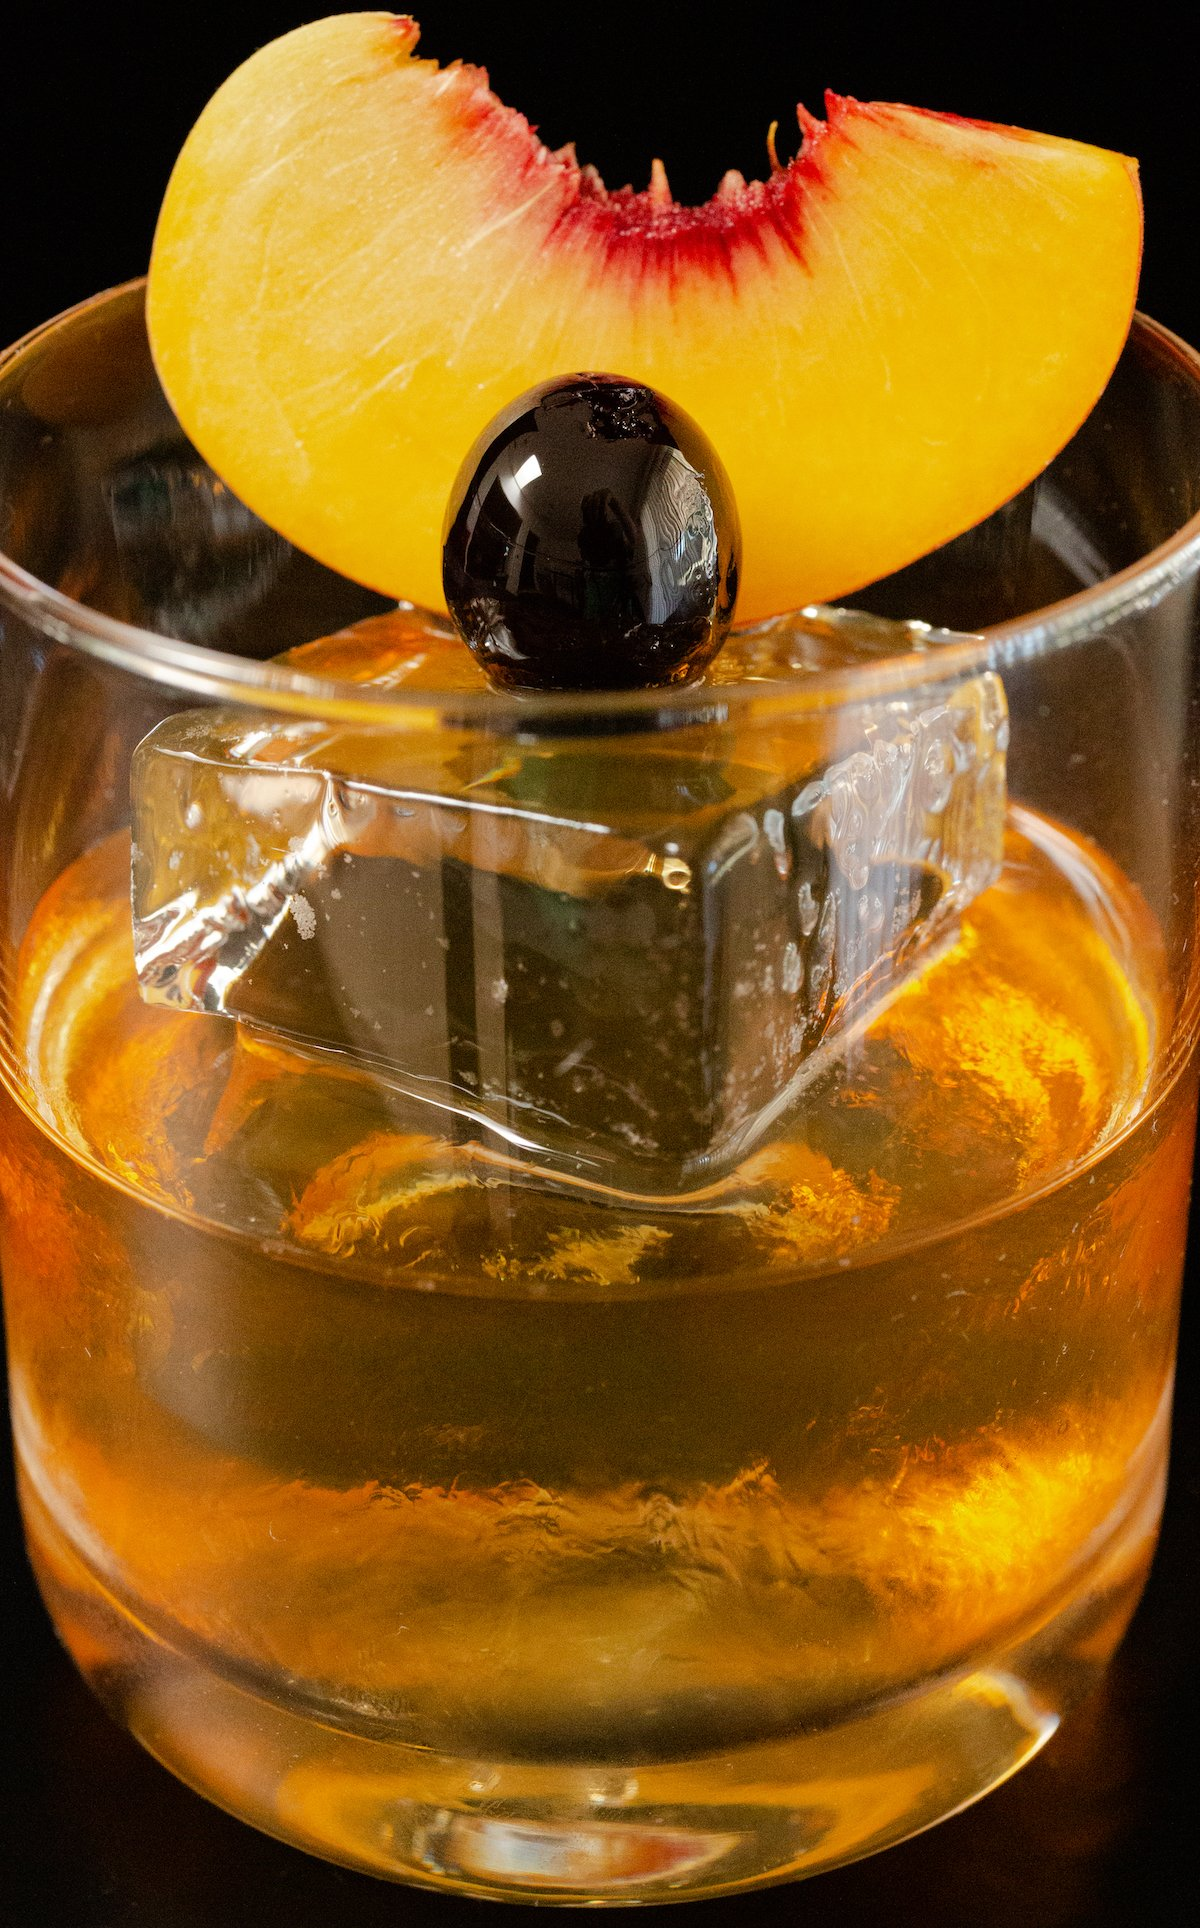 Close up of a clear lowball glass filled with a piece of large block ice, then filled halfway with old fashioned mixture. A peach slice and cherry are garnish.